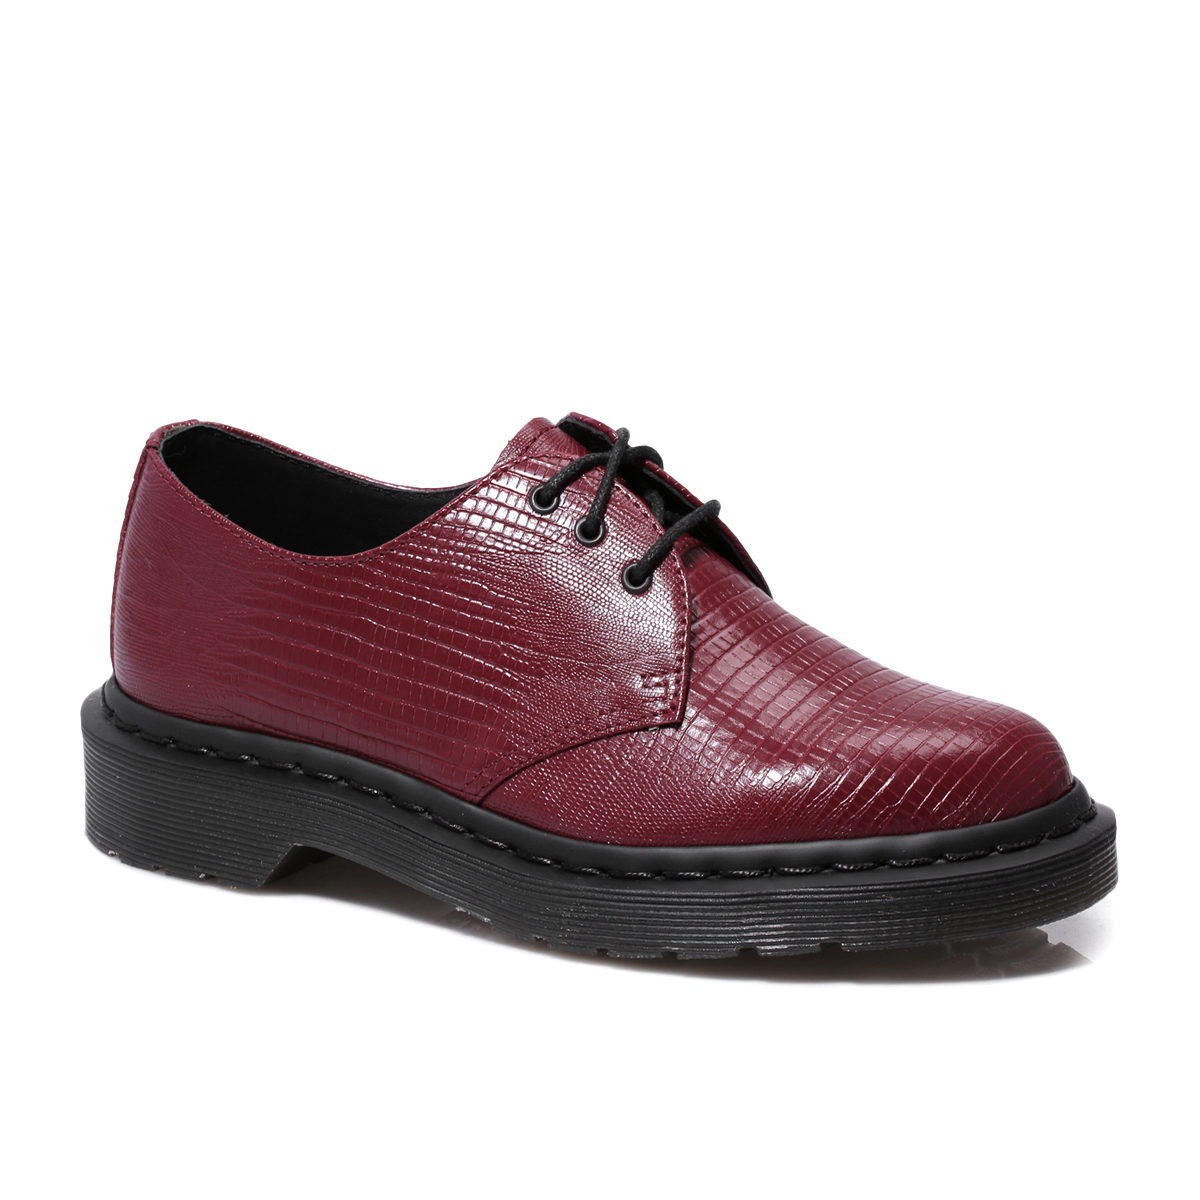 dr martens 1461 lizard oxblood red mens womens smart leather shoes size 3 8 ebay. Black Bedroom Furniture Sets. Home Design Ideas